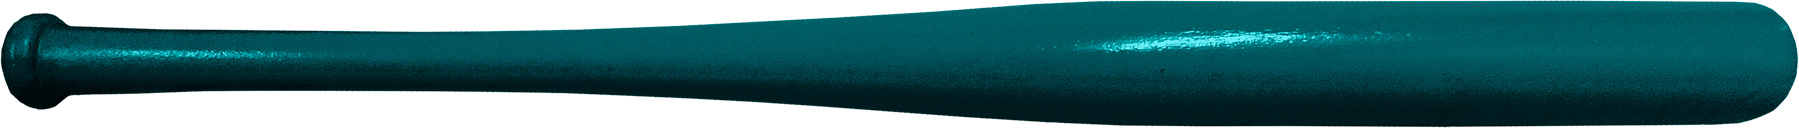 novelty teal baseball bat souvenir baseball bat